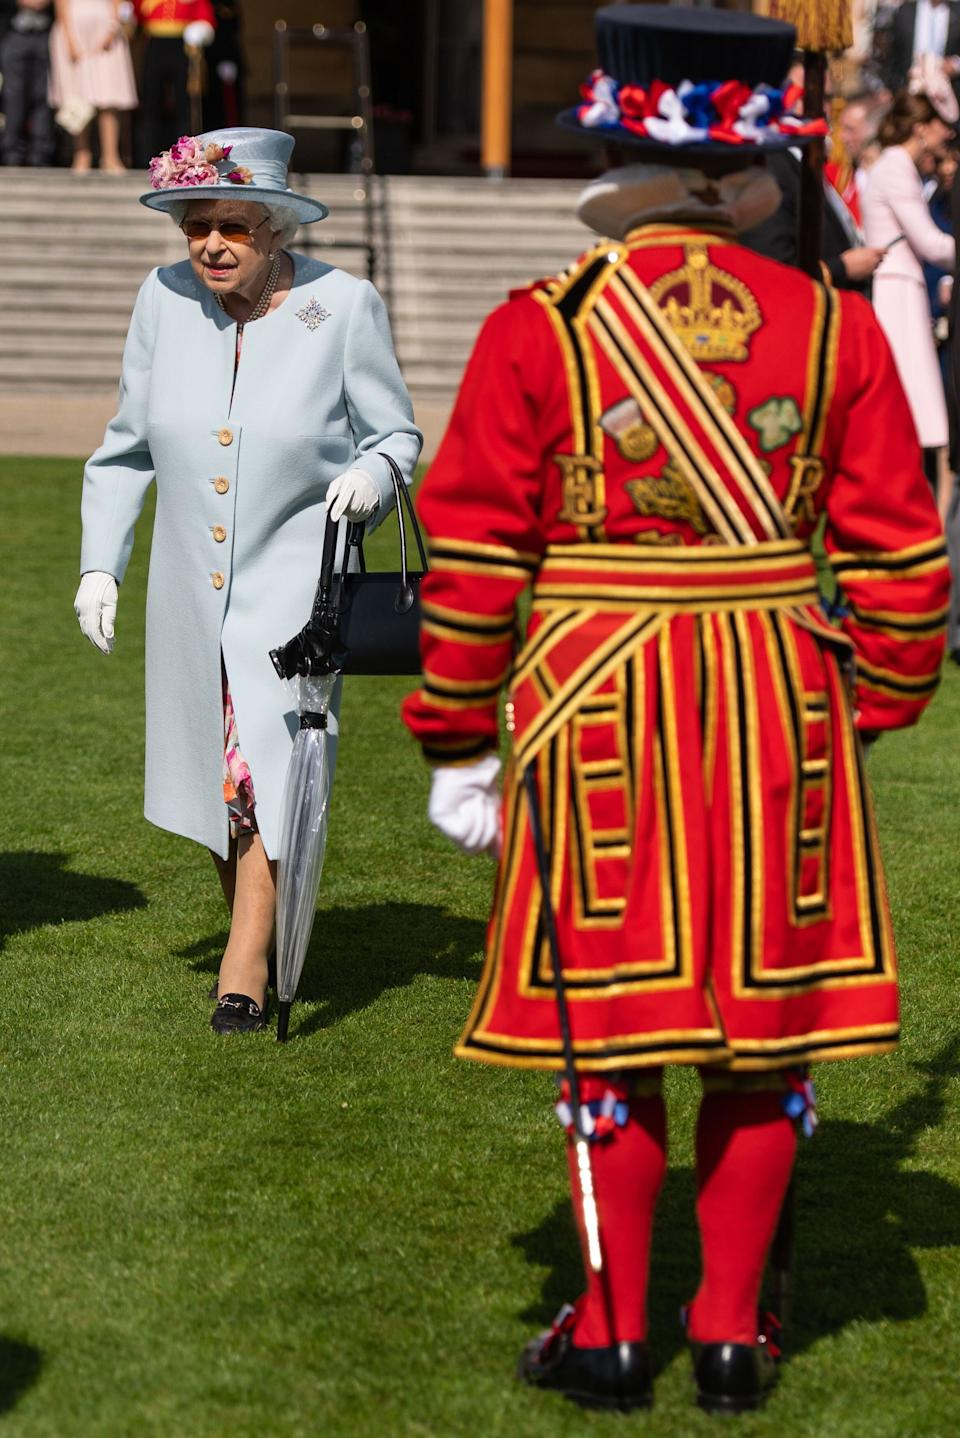 Queen Elizabeth II attending the Royal Garden Party. (Photo: PA Wire/PA Images)